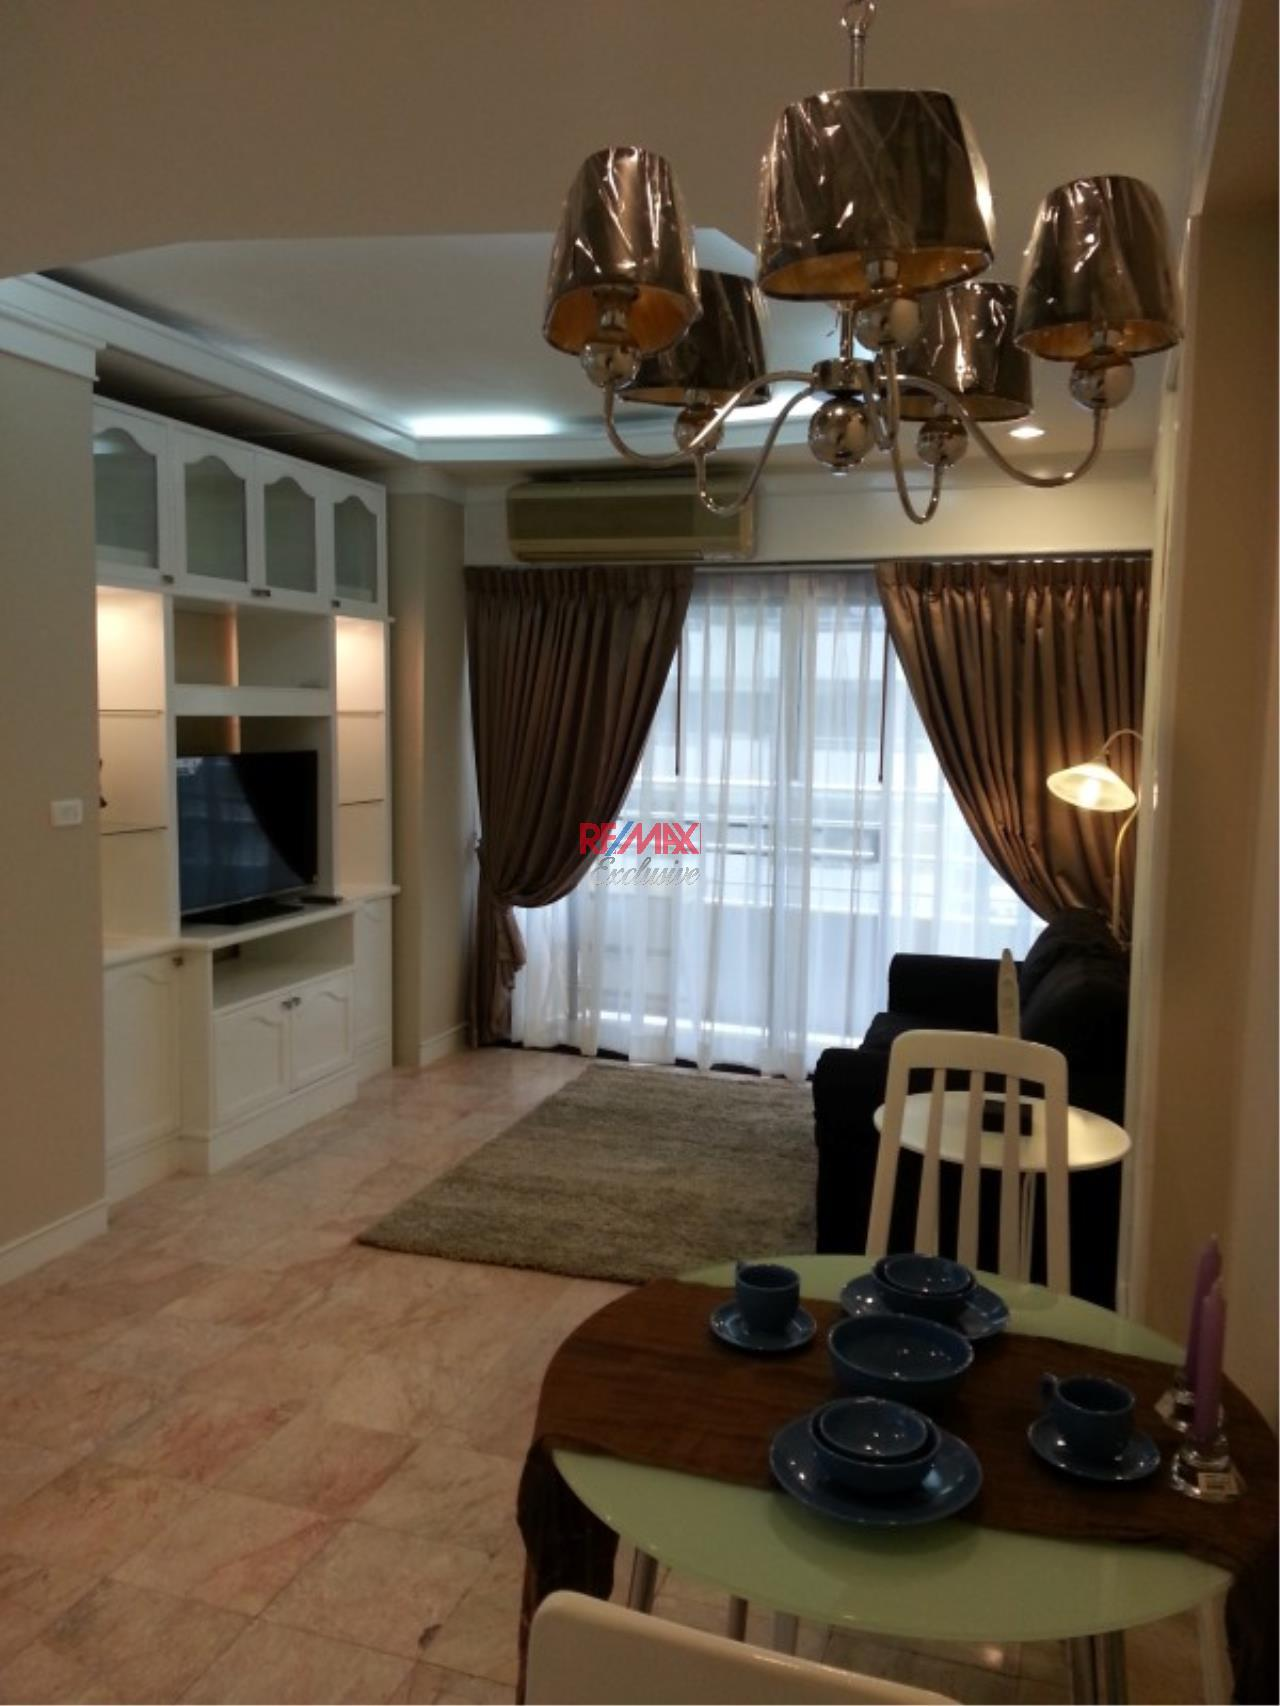 RE/MAX Exclusive Agency's Big 1 Bedroom for sale at Sarajai Mansion 4800000 13